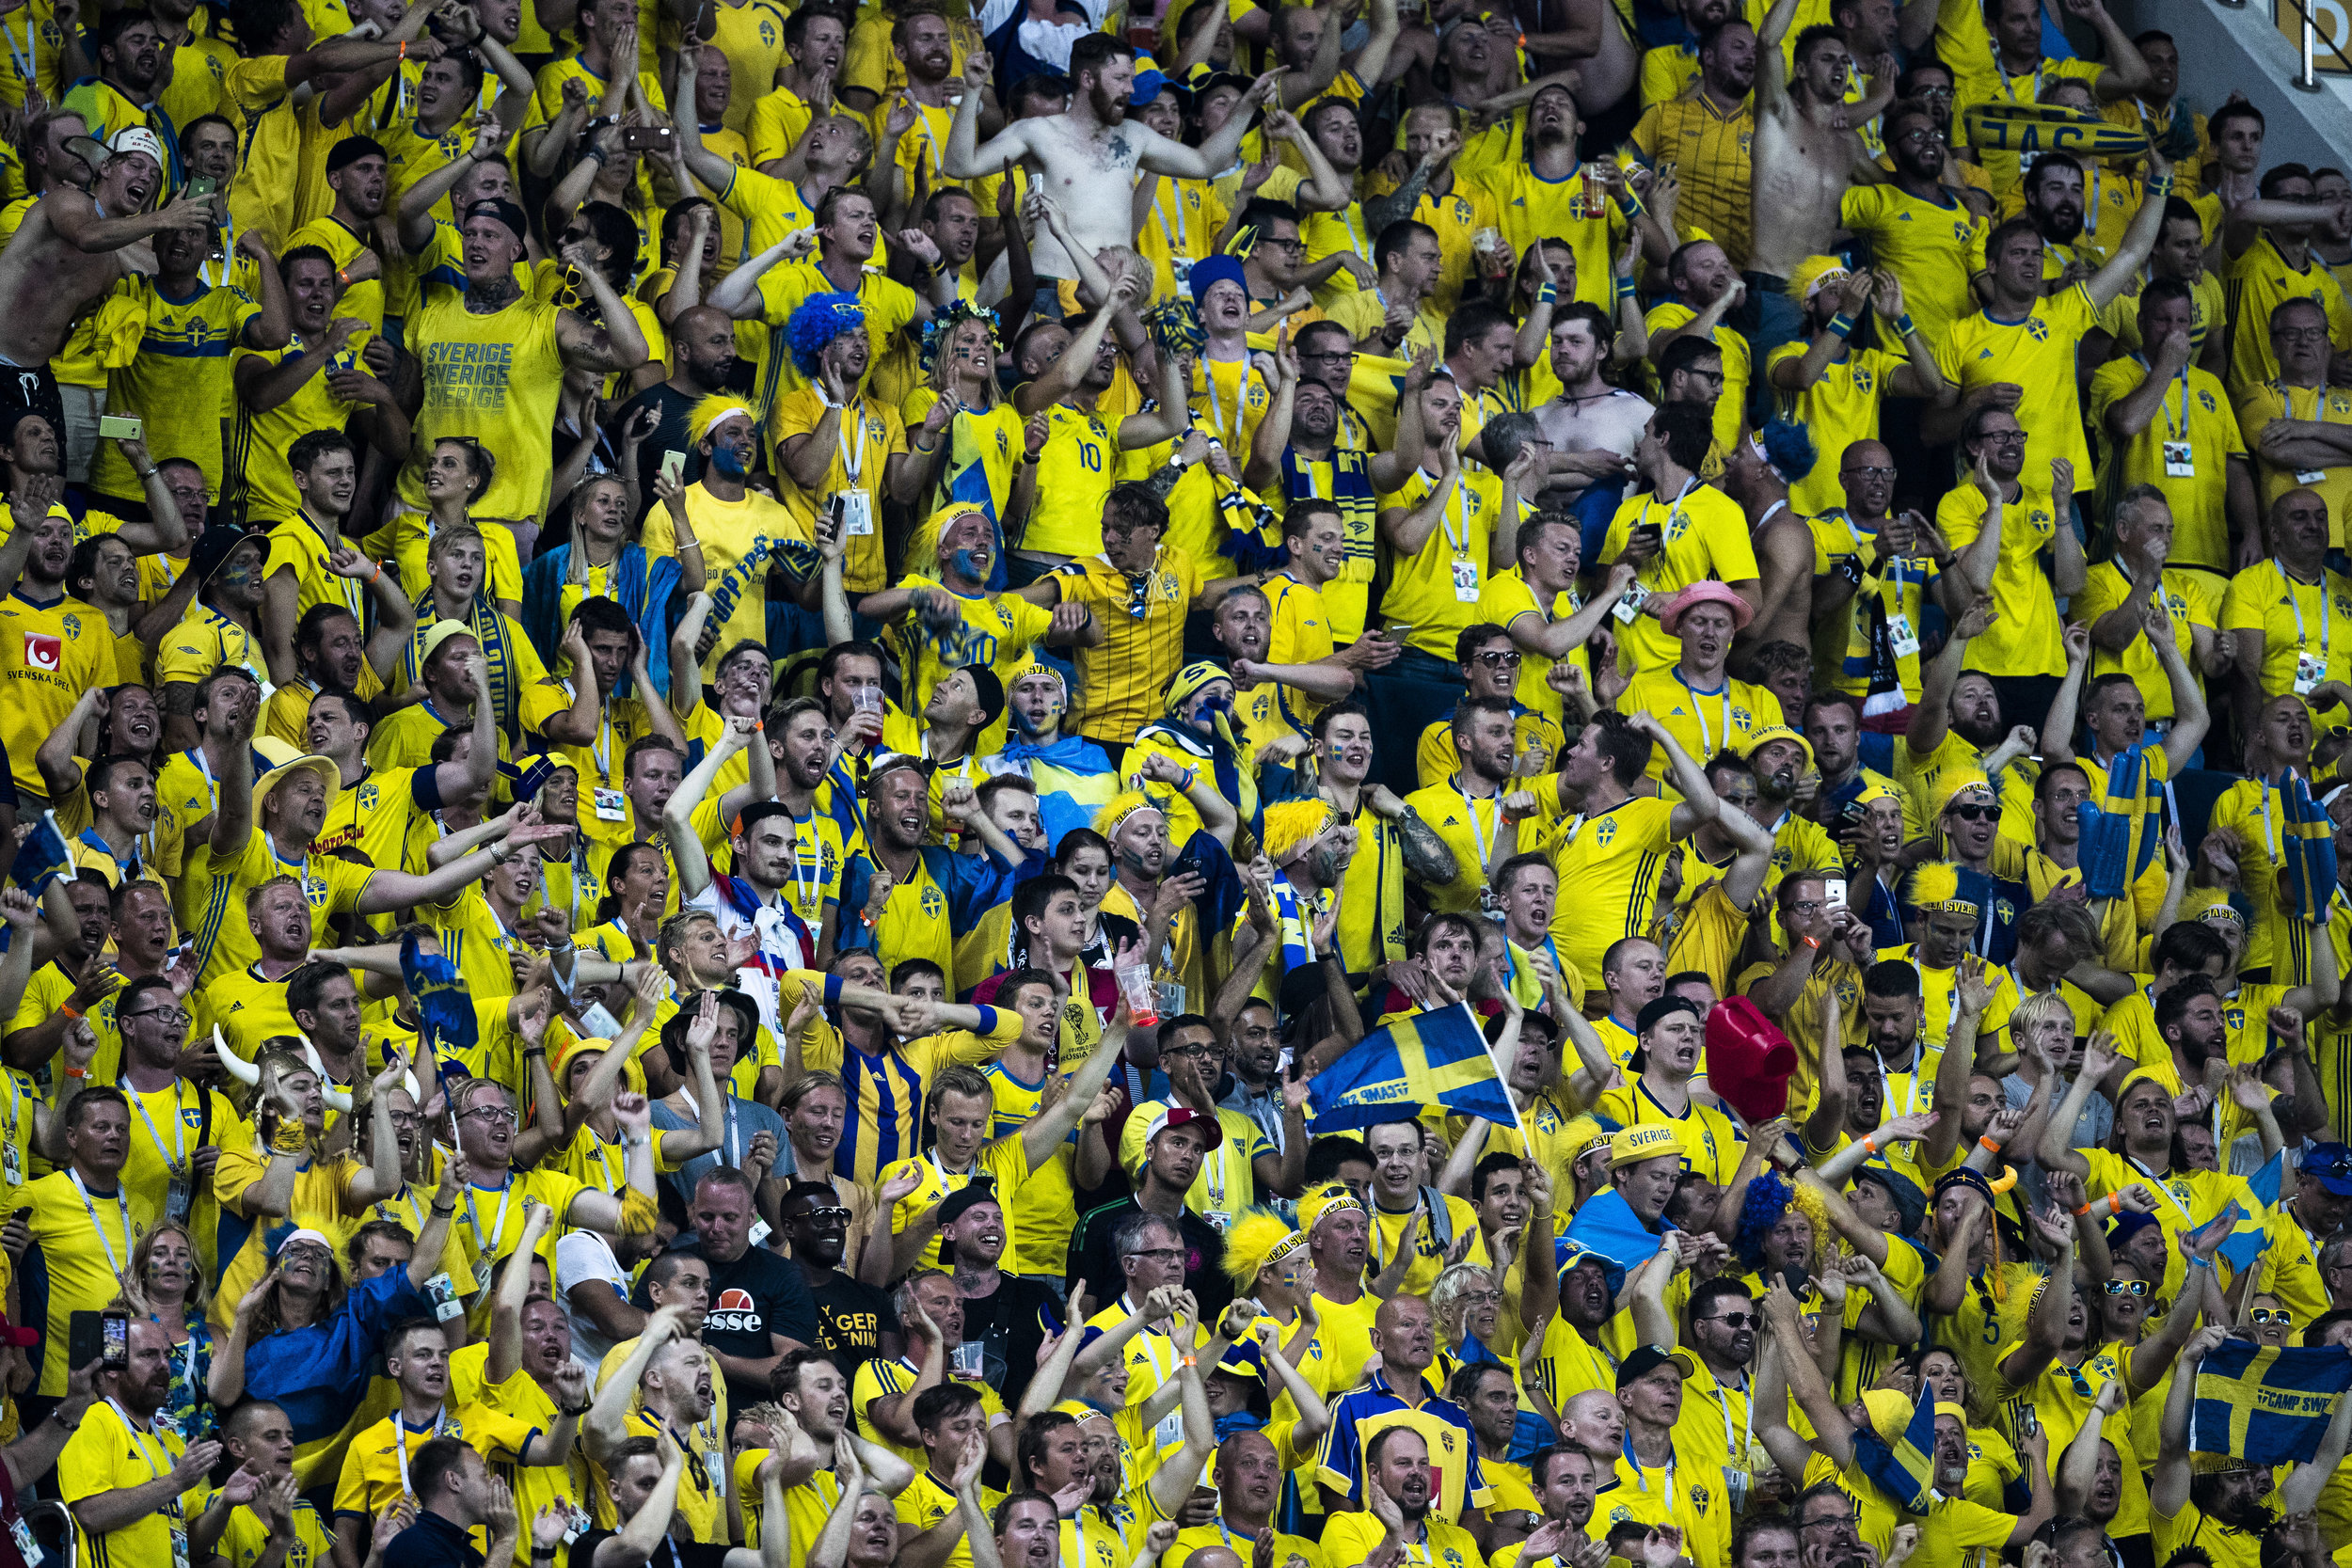 Swedish supporters celebrate their team's goal against Germany in Sochi